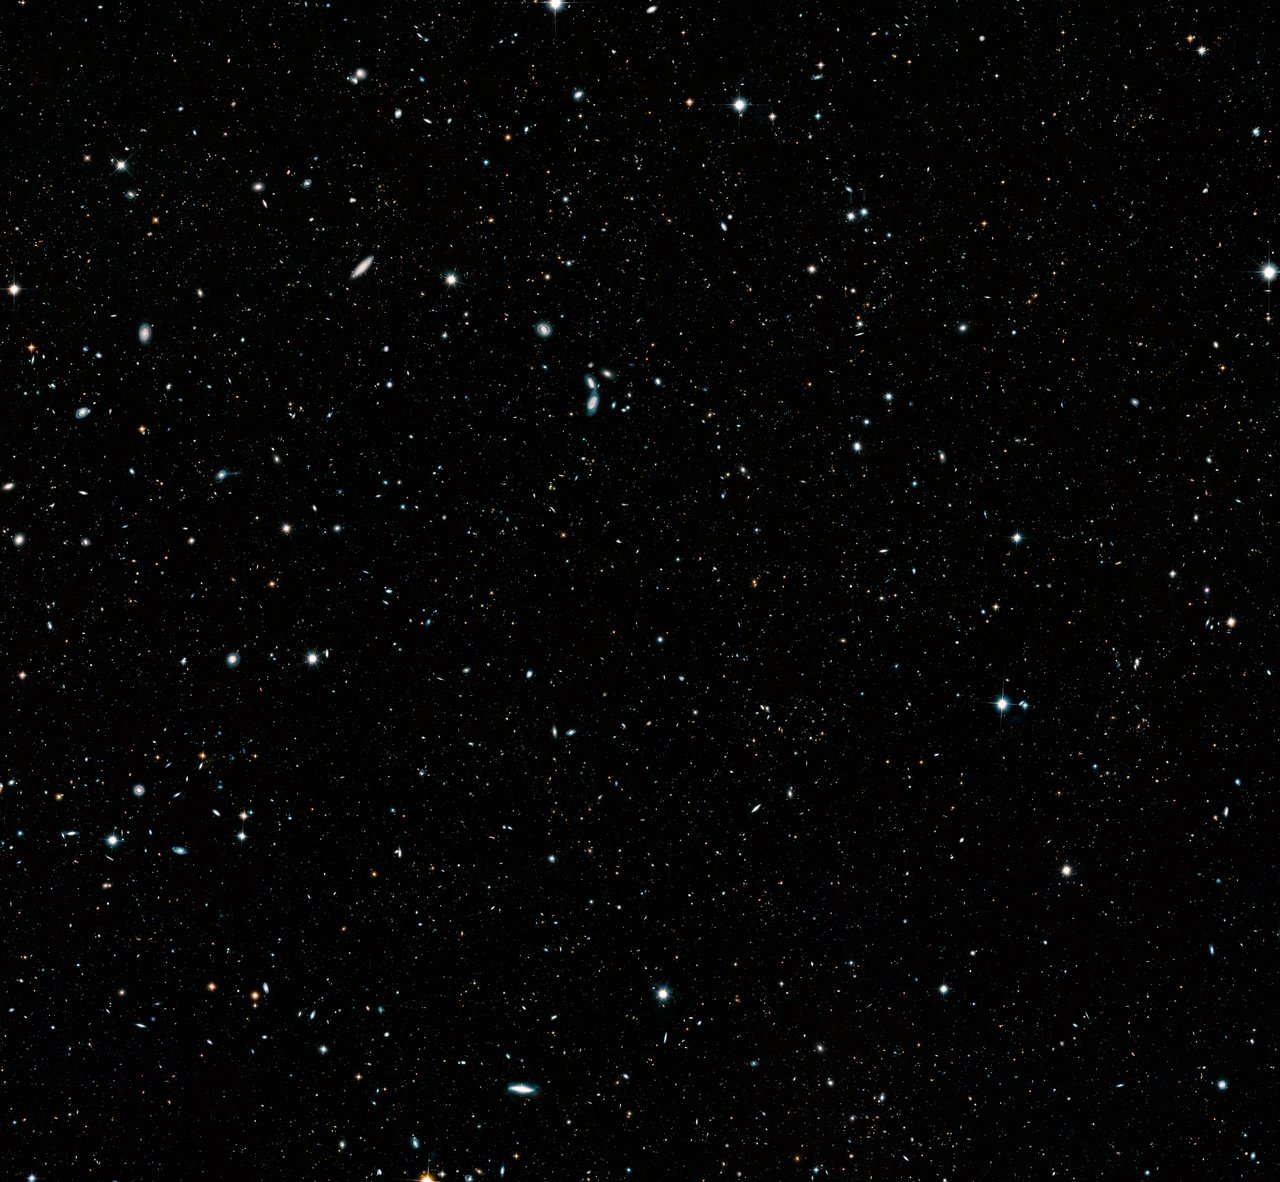 Hubble Legacy Field Image Shows 500 Million Year Old Universe